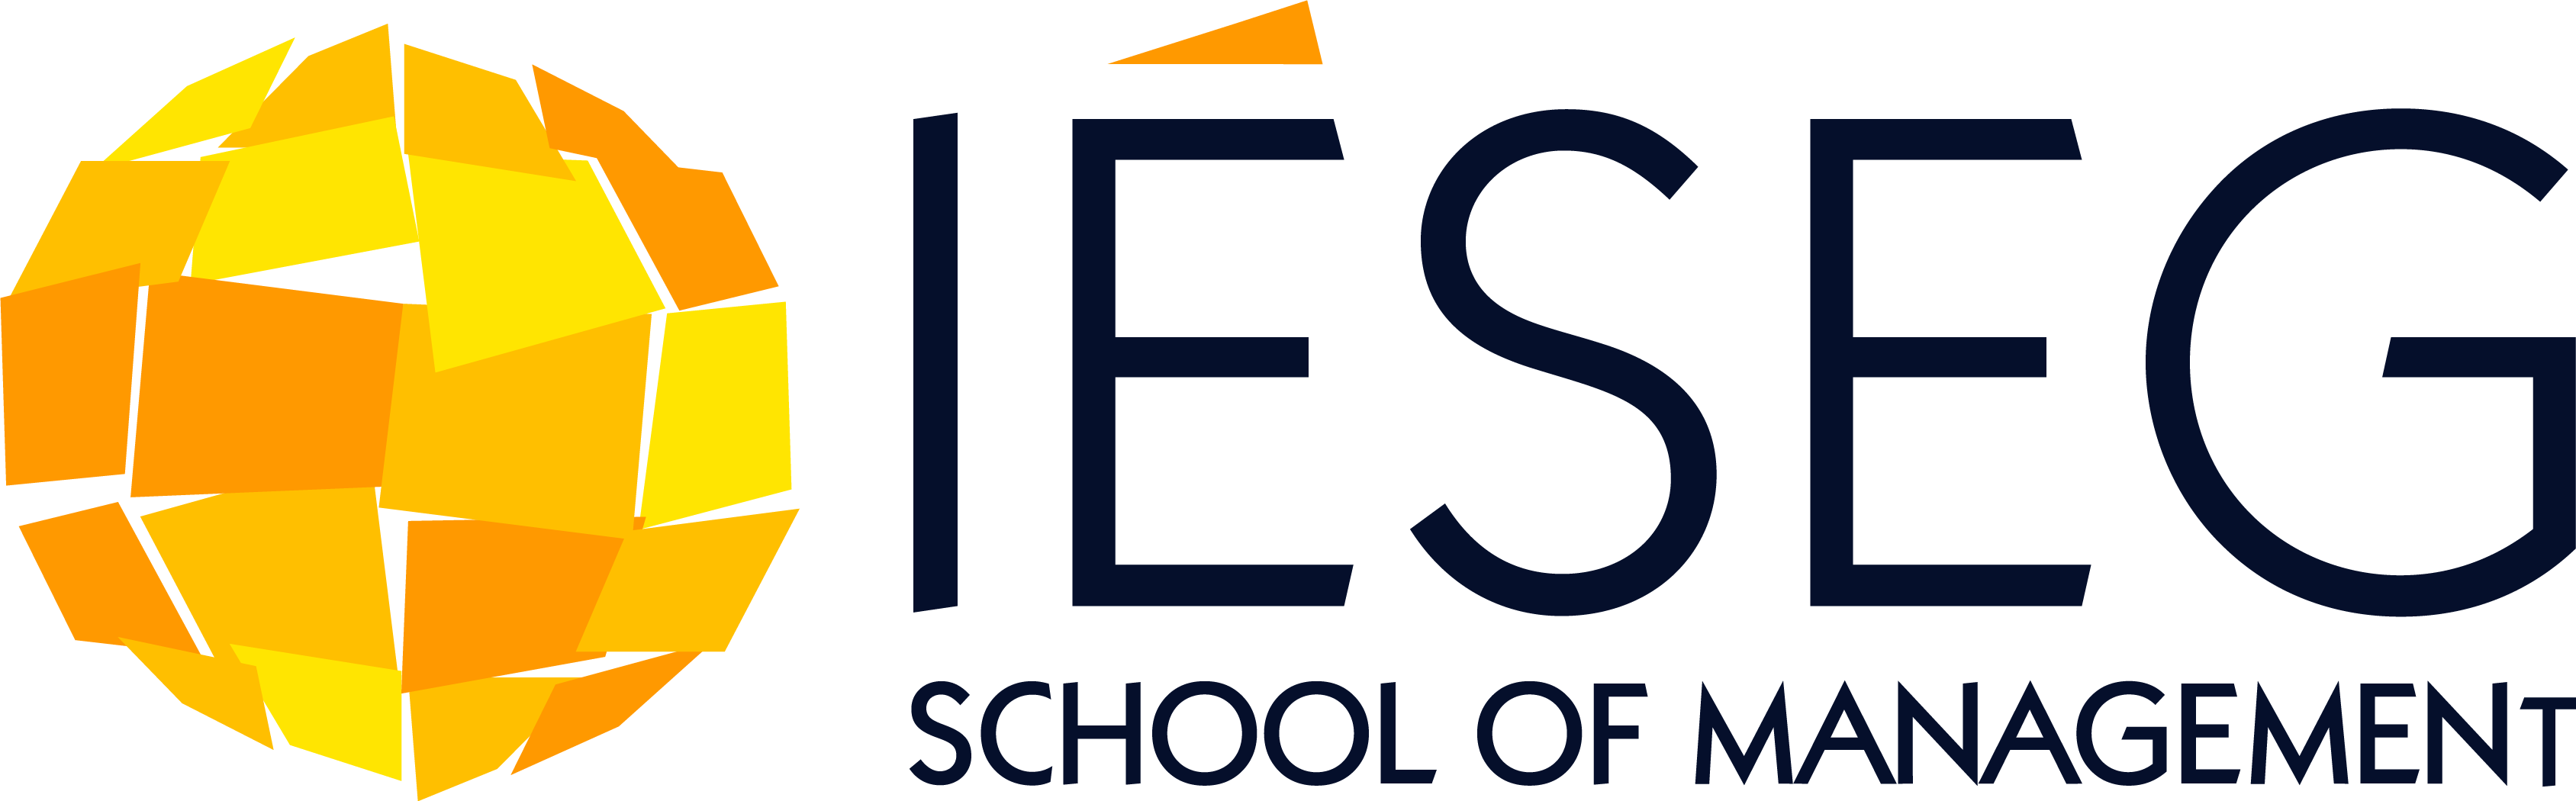 IÉSEG School of Management - Wikipedia